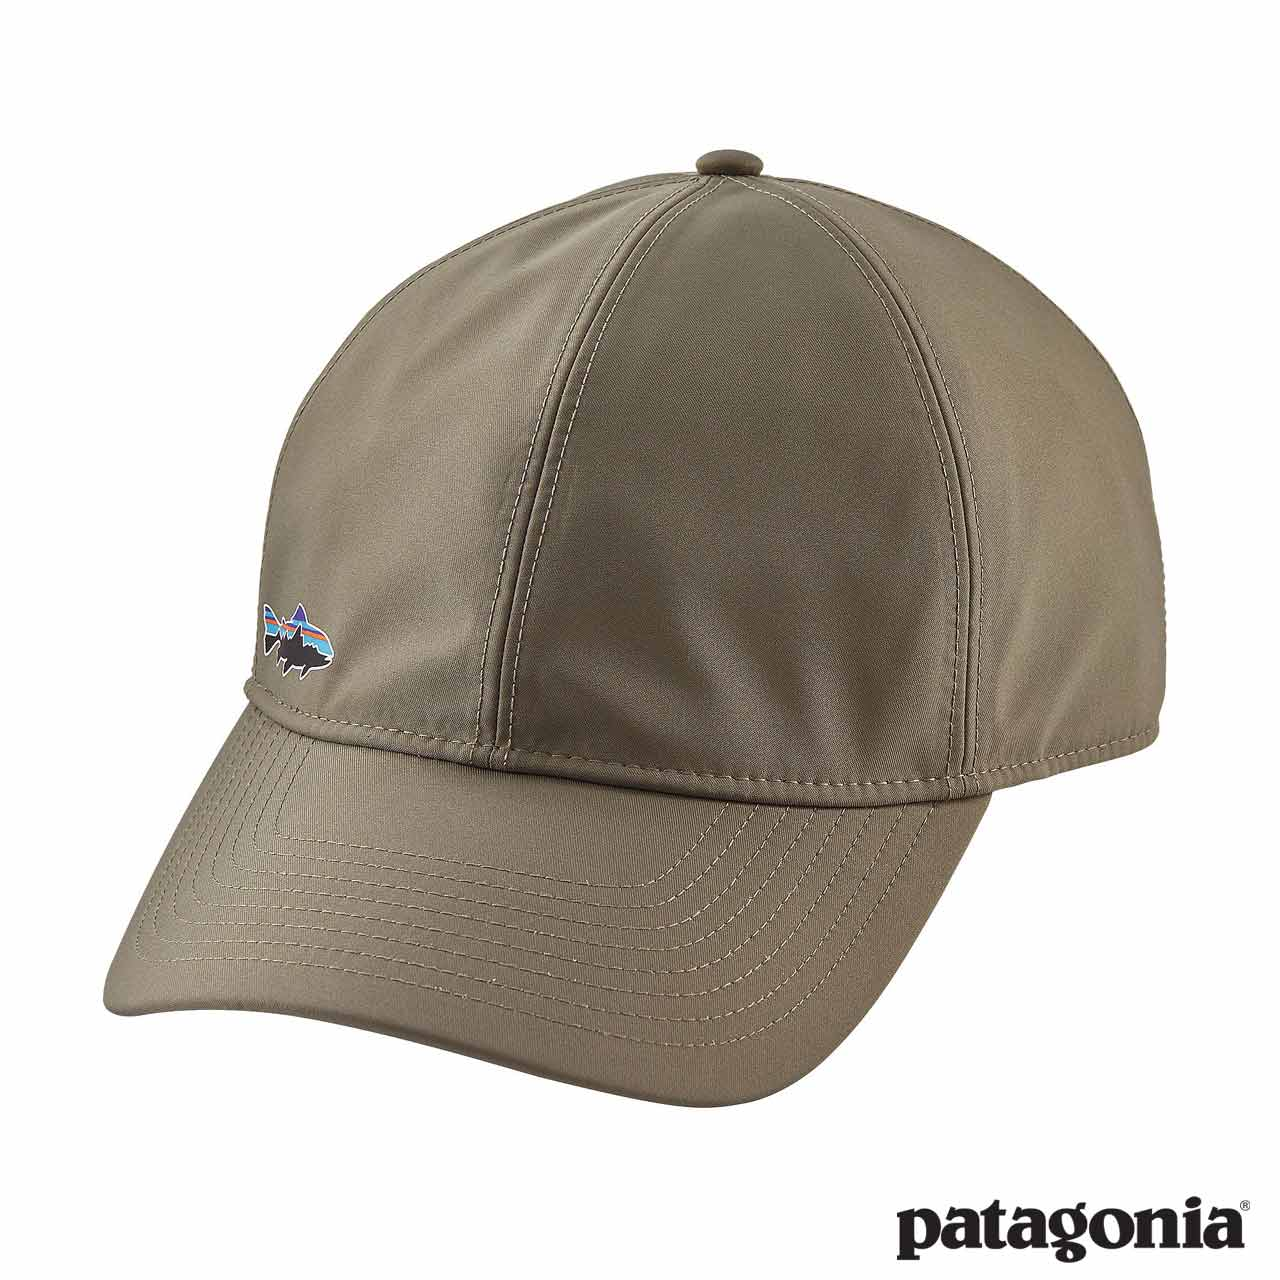 patagonia cappello  Cappello Water Resistant LoPro Cap - Patagonia - Like a River